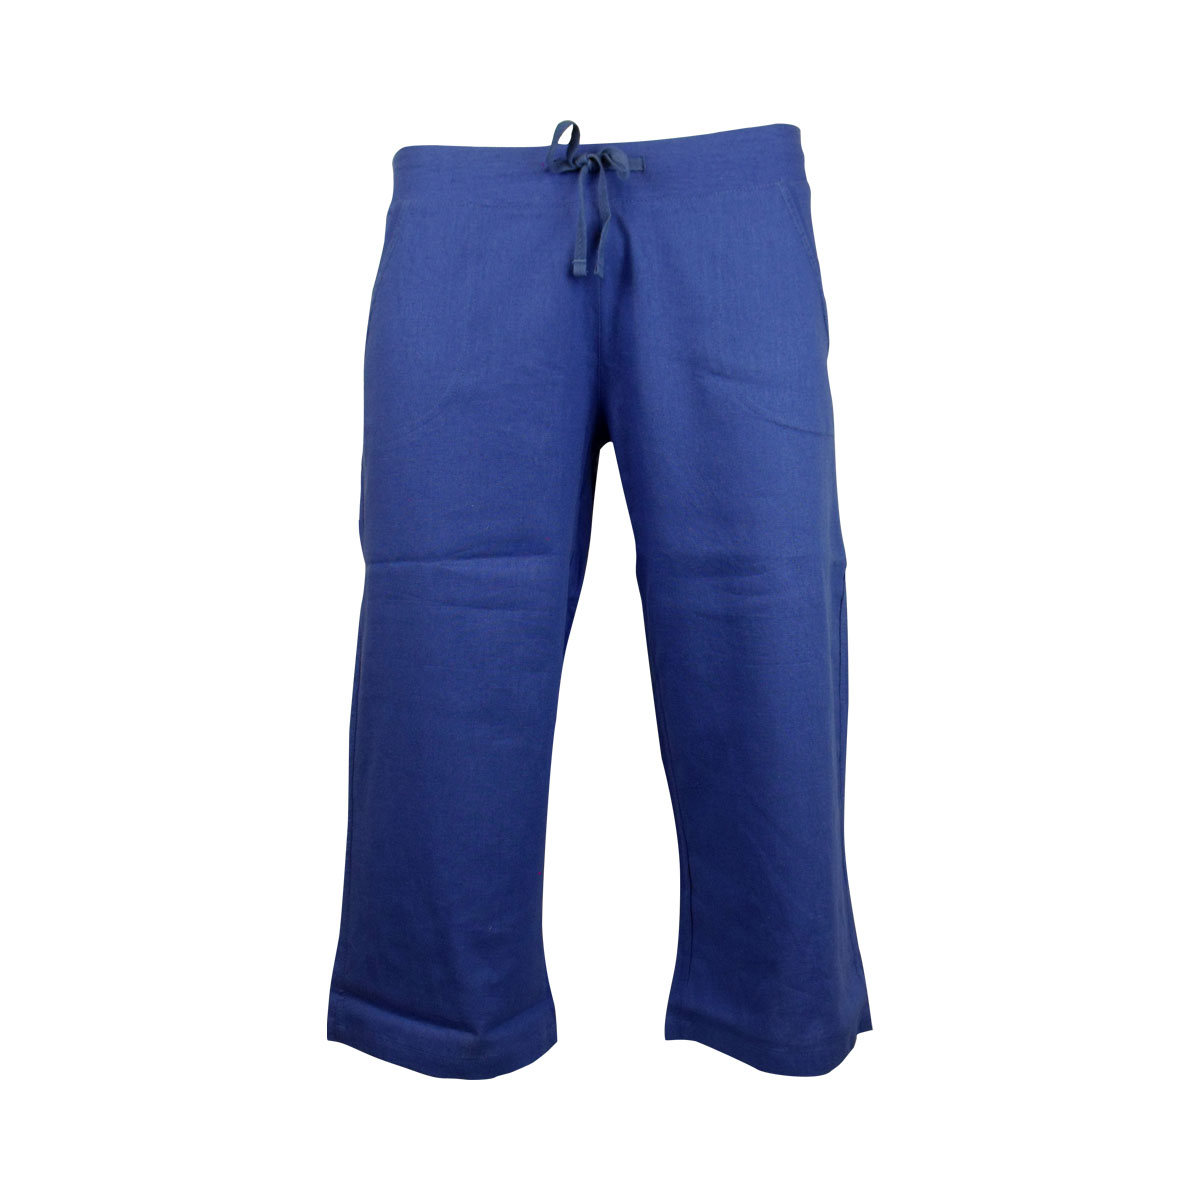 FREE SHIPPING AVAILABLE! Shop programadereconstrucaocapilar.ml and save on Misses Short Size Pants.